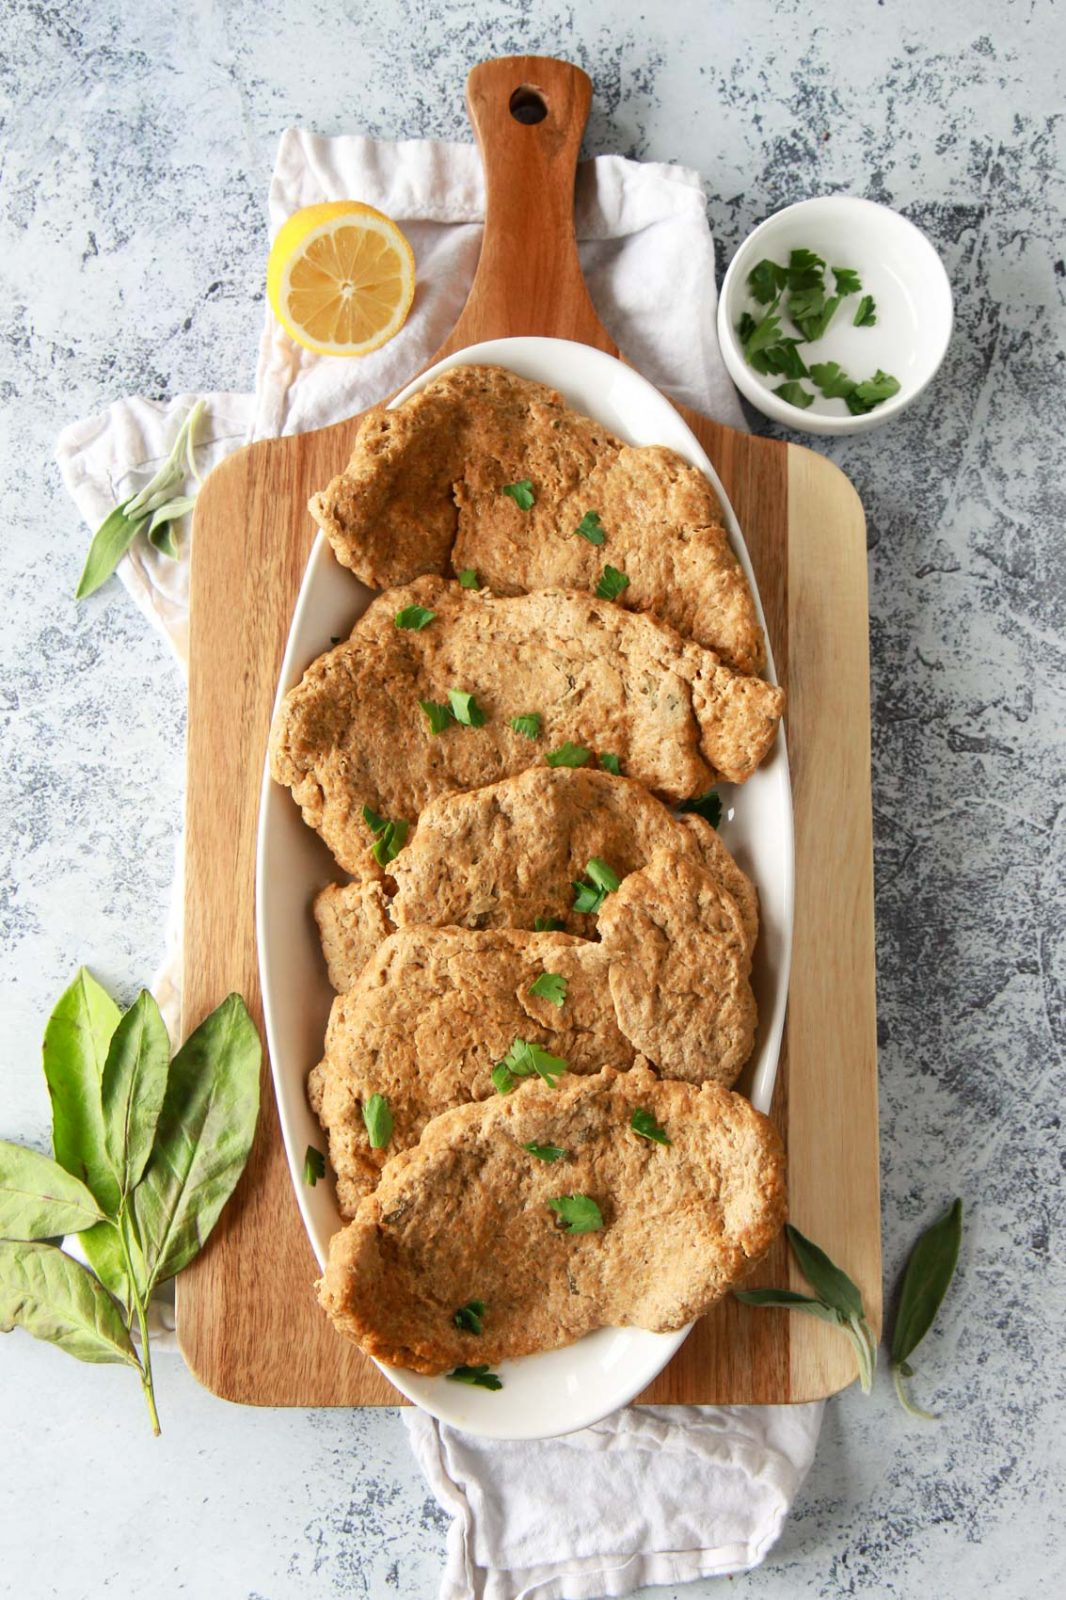 These seitan chicken cutlets are easy and versatile. A vegan meat replacement, these seitan chicken breasts are simmered and done in under an hour. This plant based chicken alternative recipe is made from vital wheat gluten, packed with protein, and flavored with savory herbs.